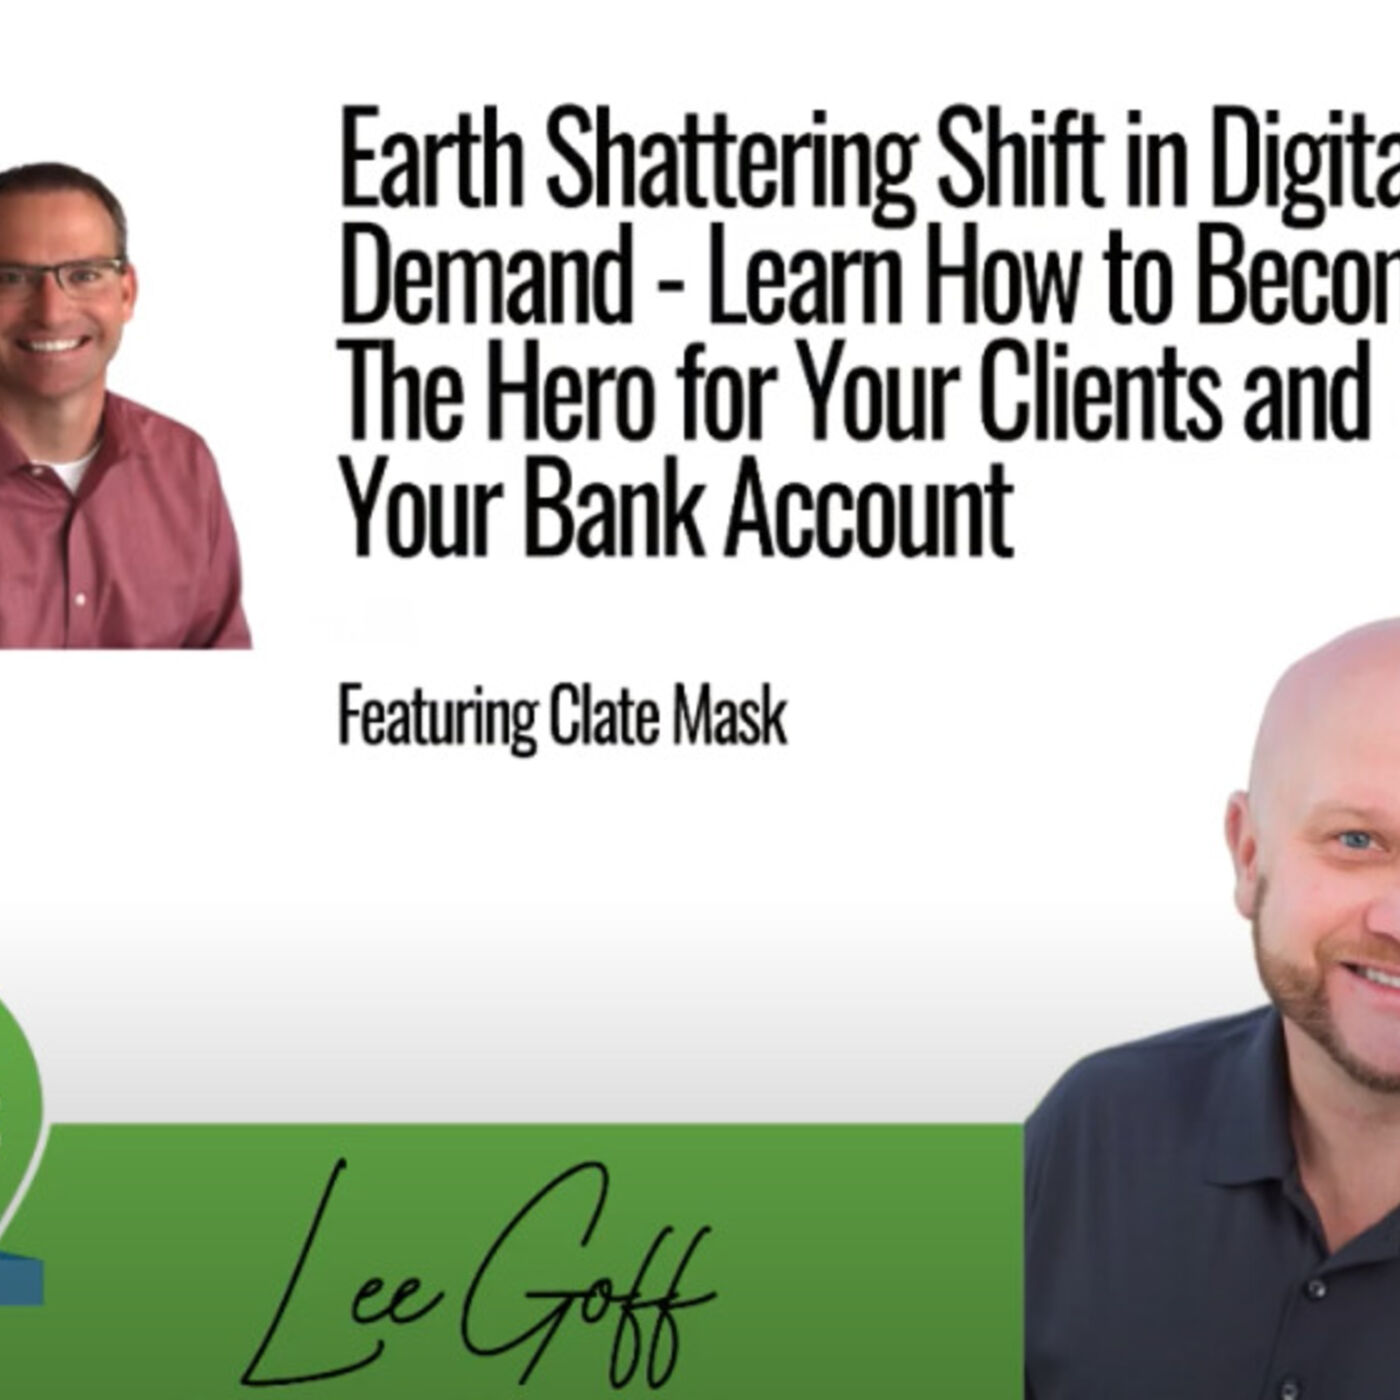 Clate Mask – Earth Shattering Shift in Digital Demand – Learn How to Become The Hero for Your Clients and Your Bank Account - Agency Success GPS Podcast - Lee Goff - Episode 2